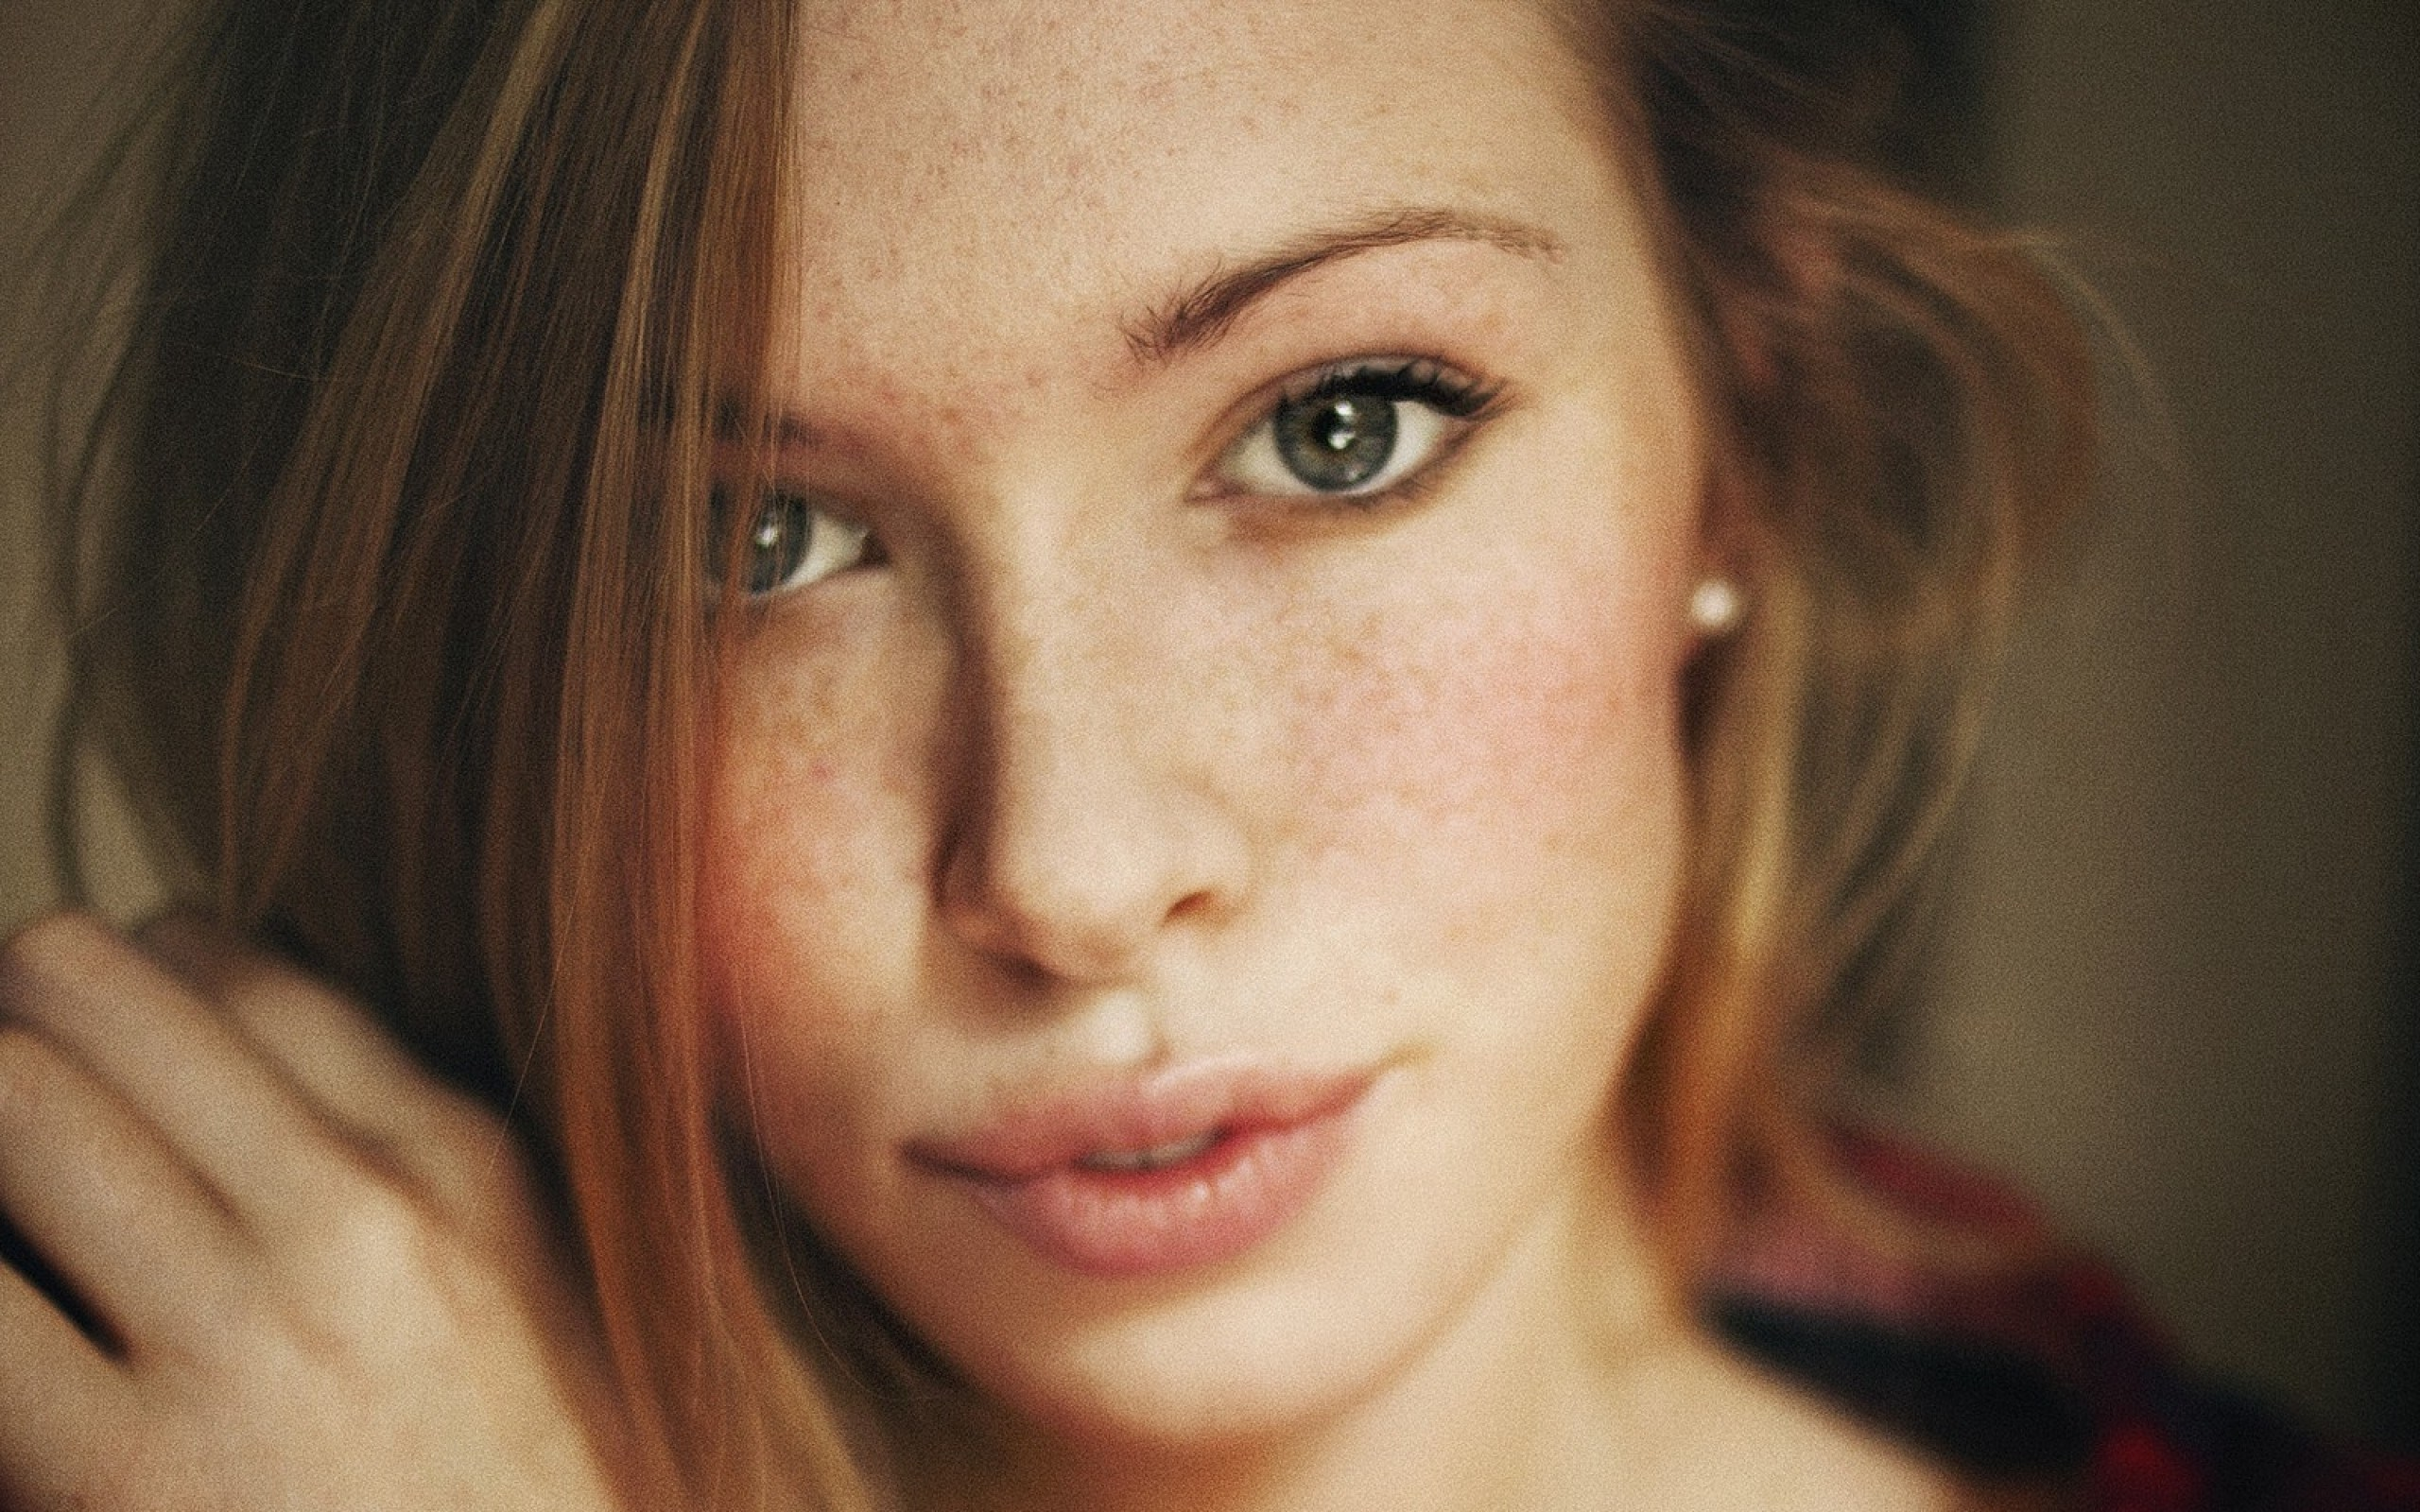 Cute freckled teen girl